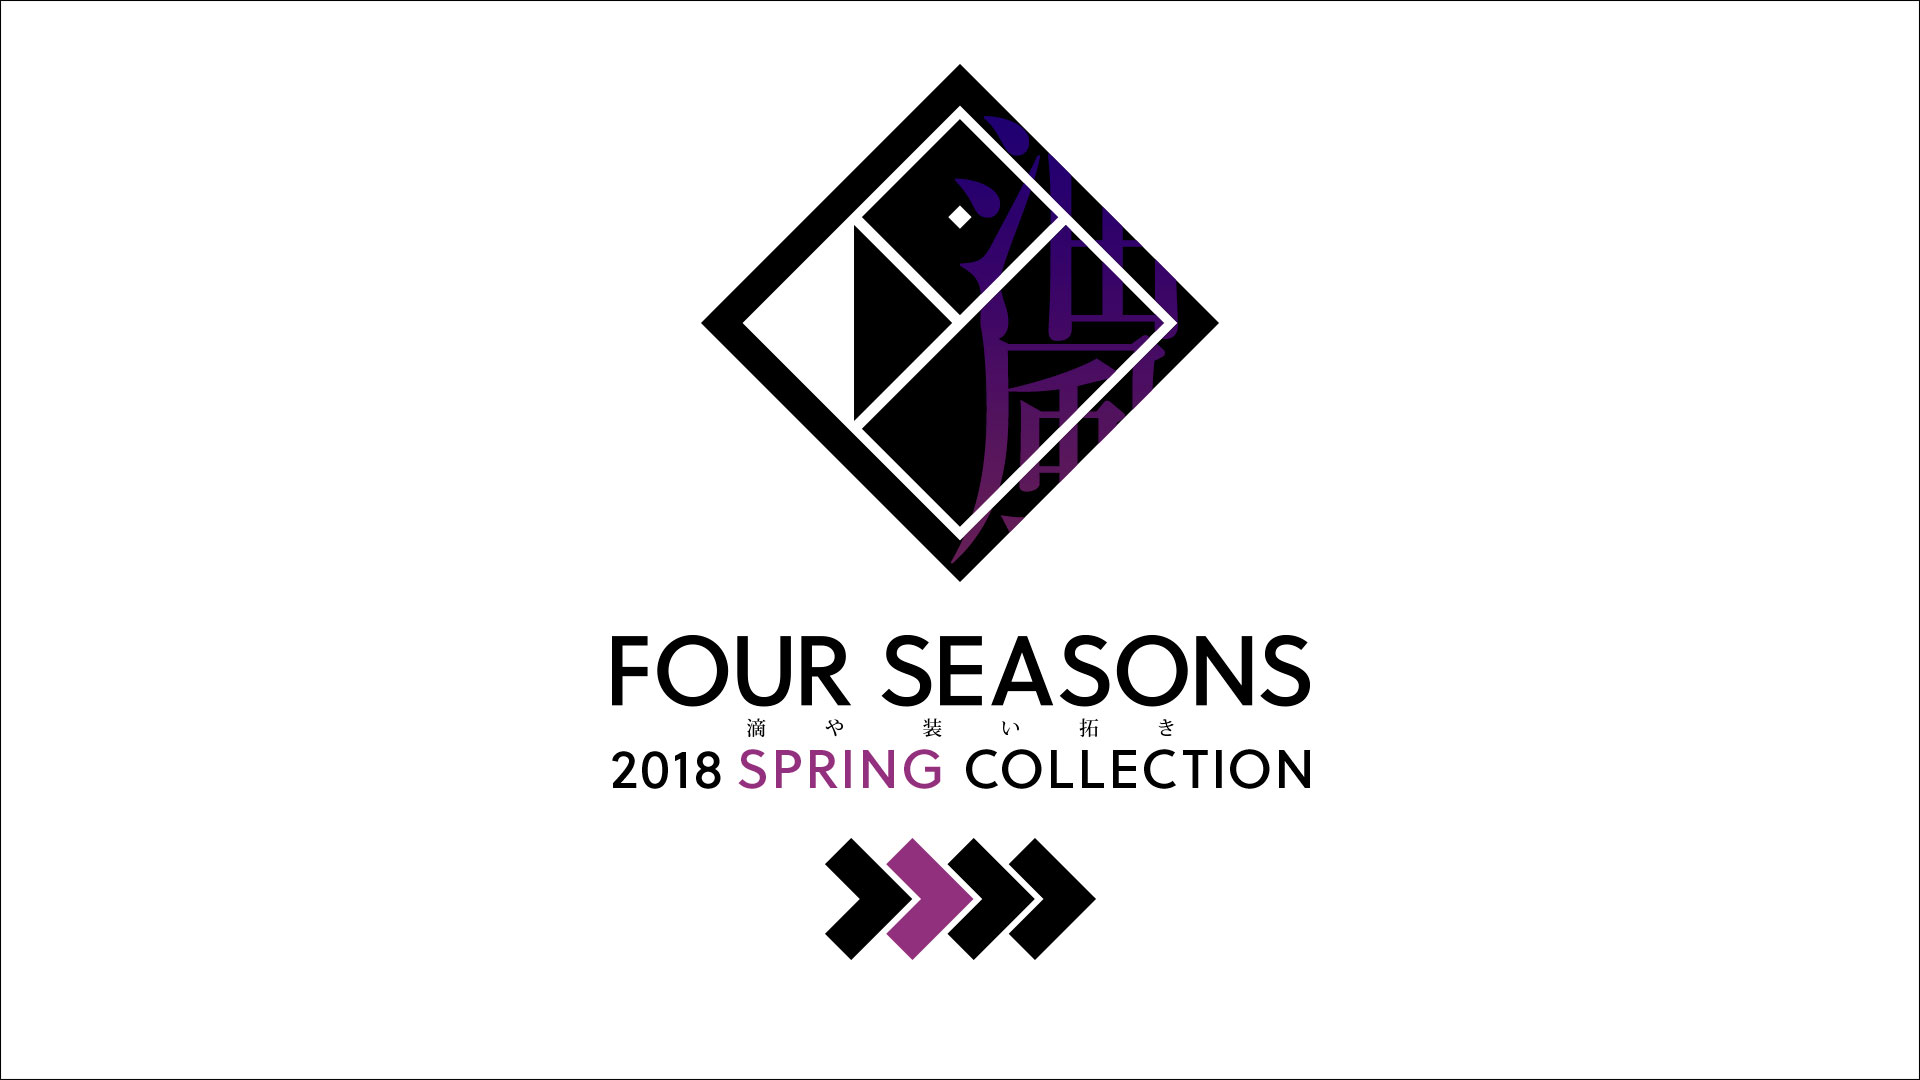 [PHOTO:FOUR SEASONS 2018 SPRING COLLECTION]